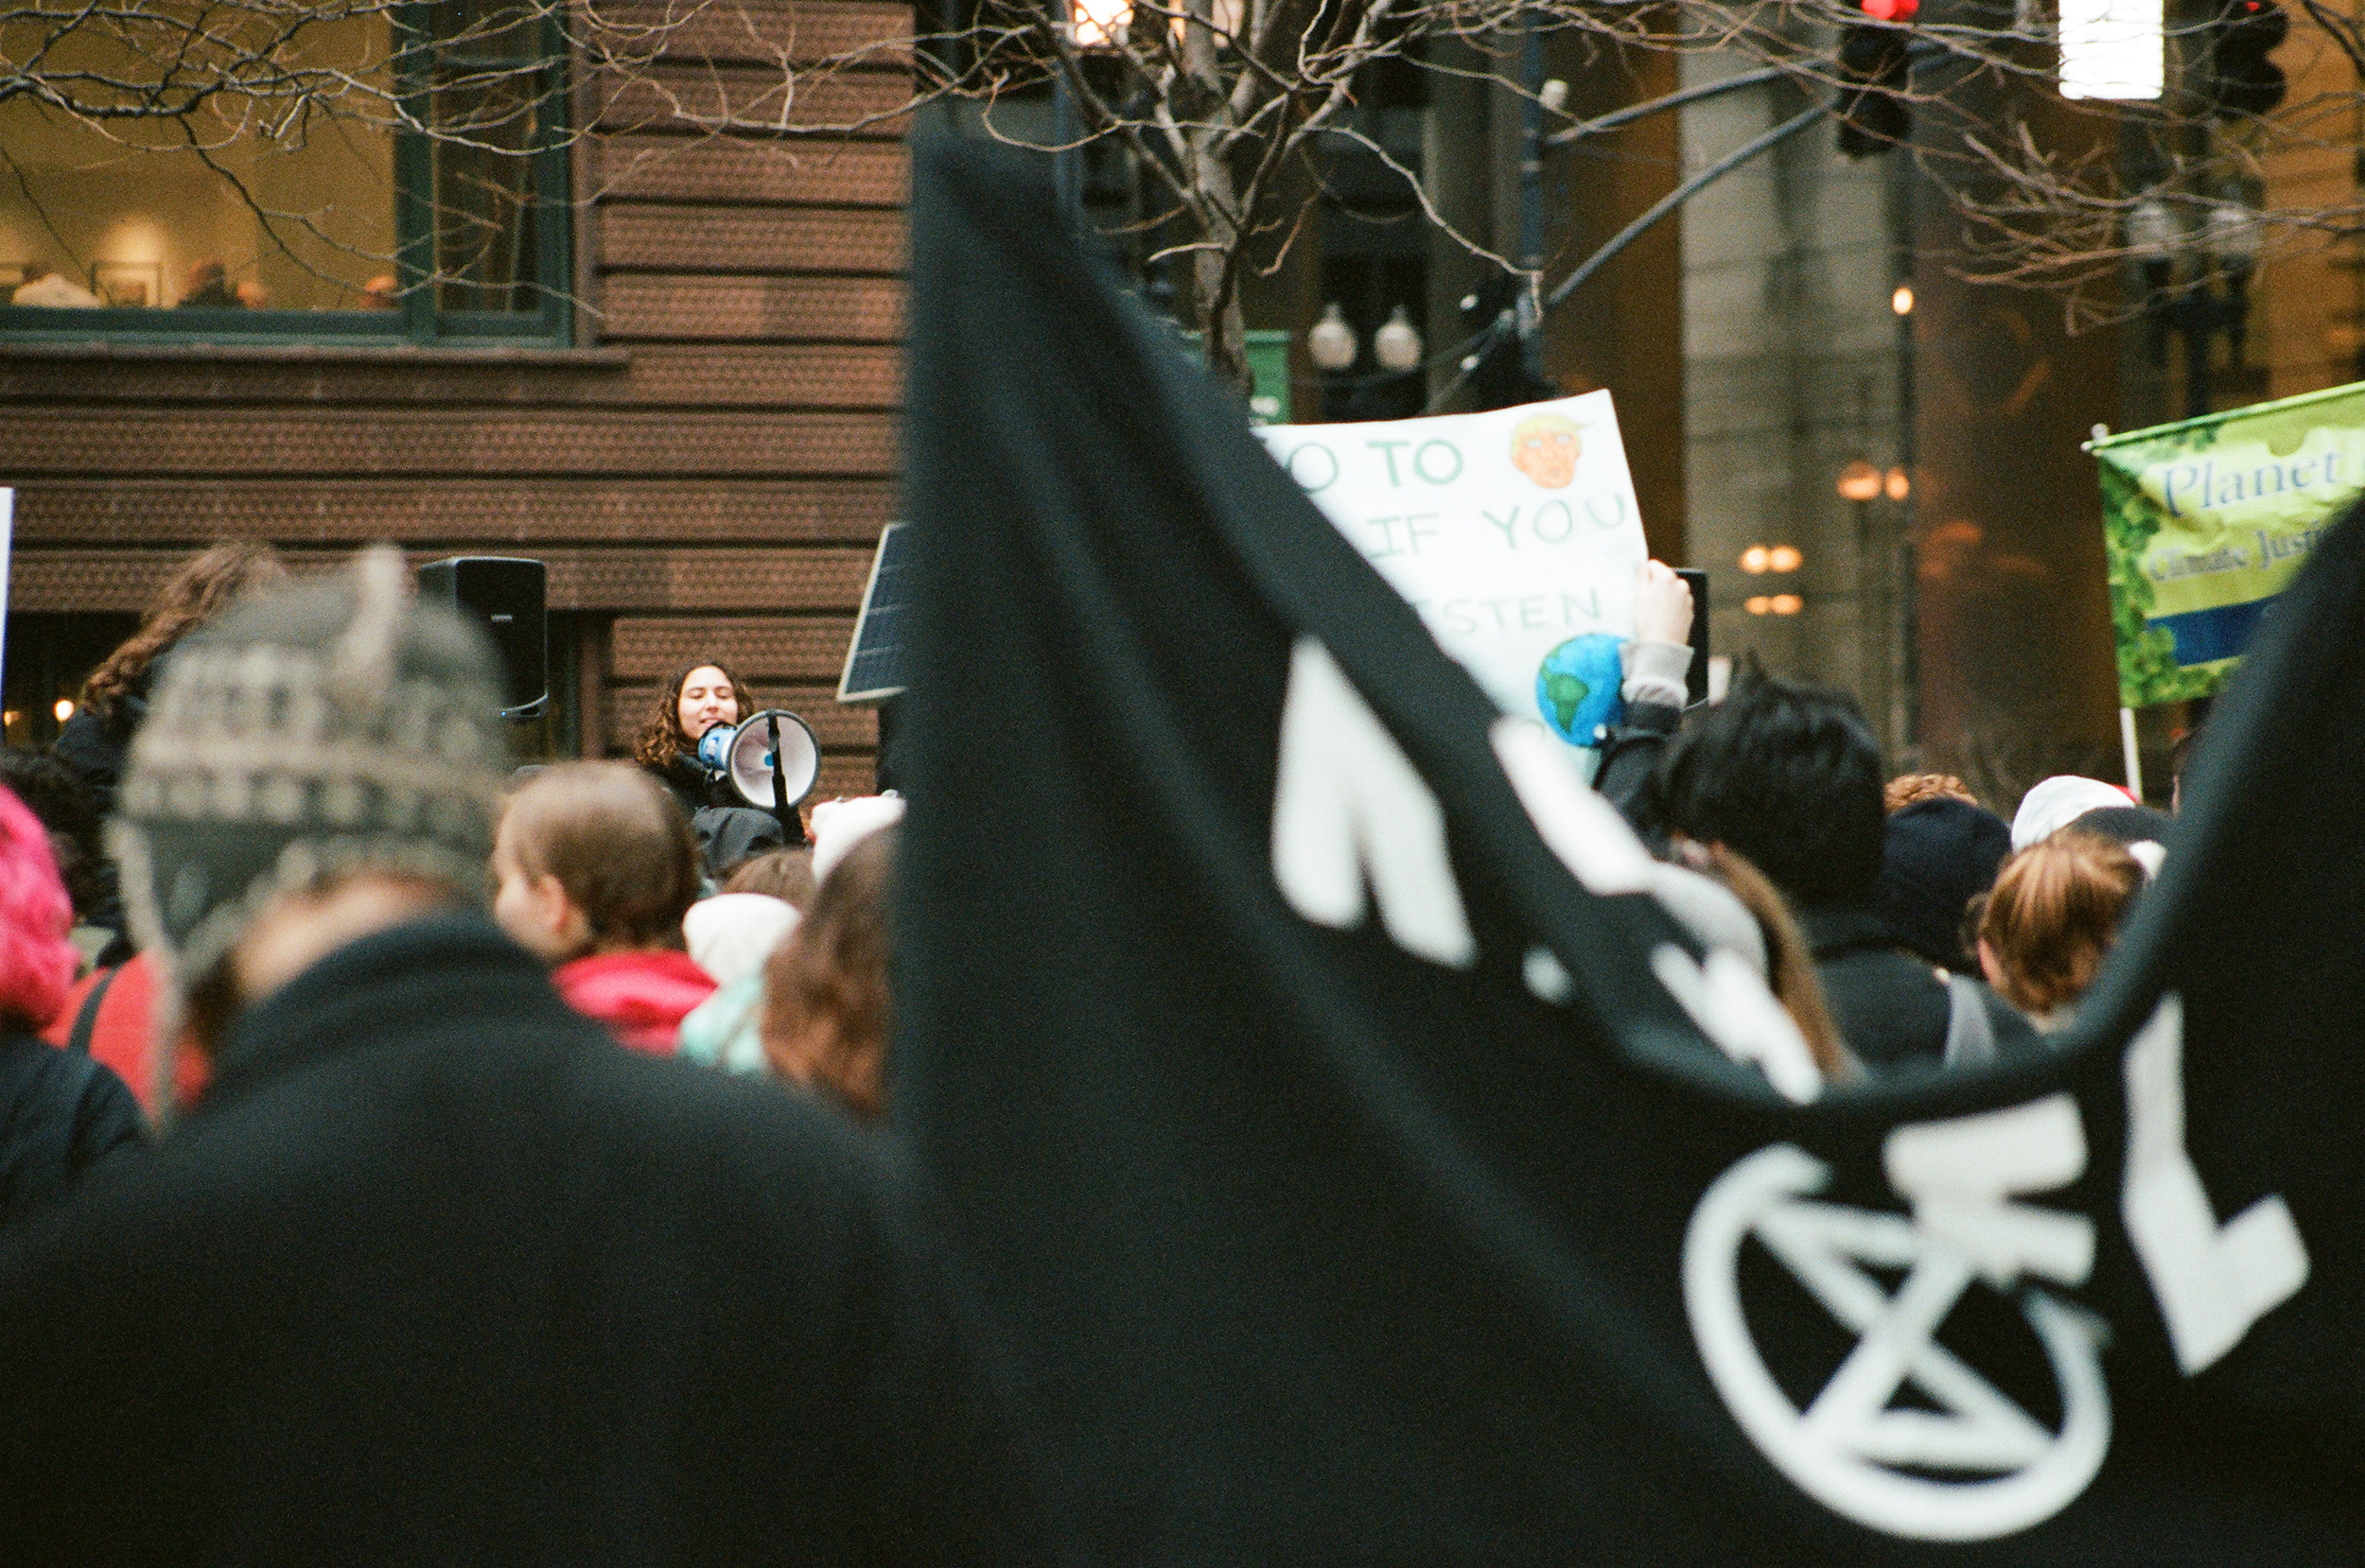 Extinction Rebellion Chicago demonstrating in solidarity with Youth Climate Strike on March 15, 2019